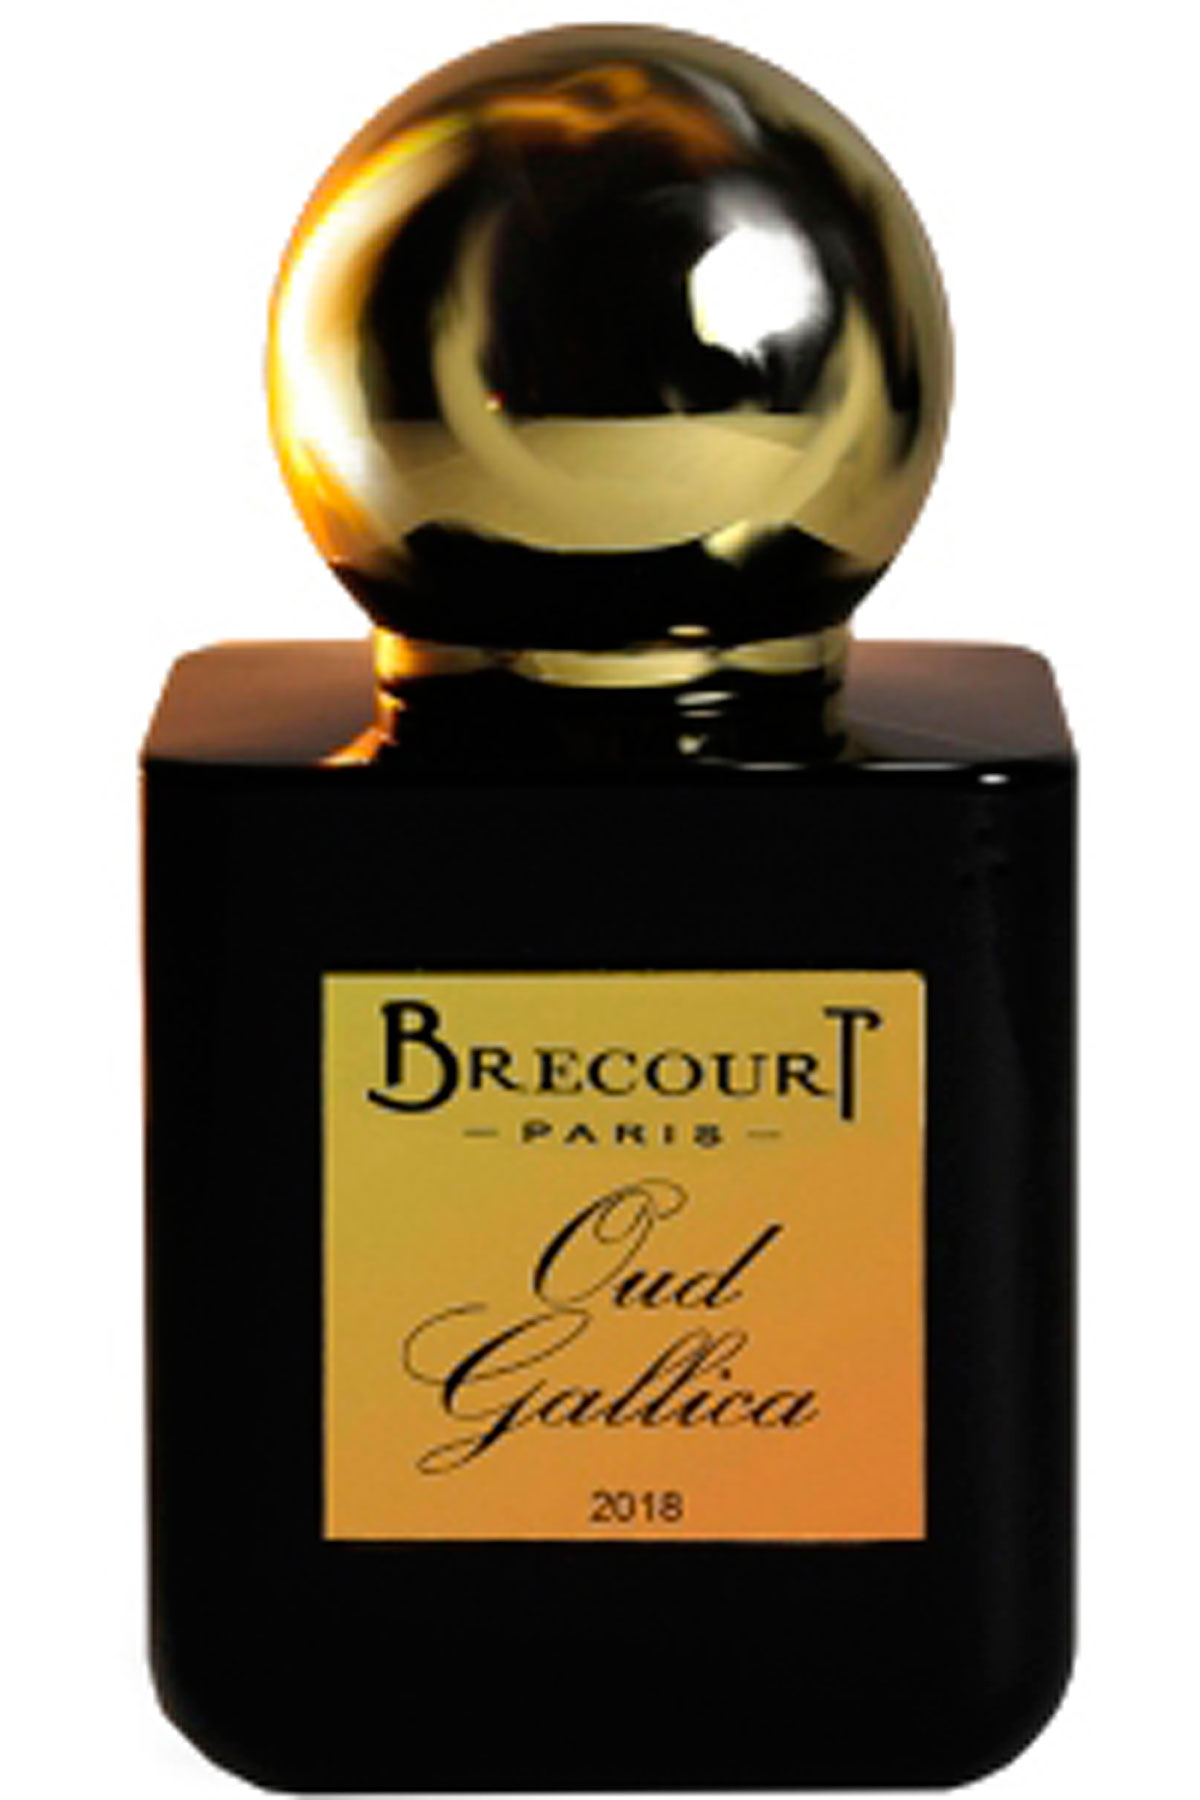 Brecourt Fragrances for Men, Oud Gallica Eau De Parfum 50 Ml, 2019, 50 ml